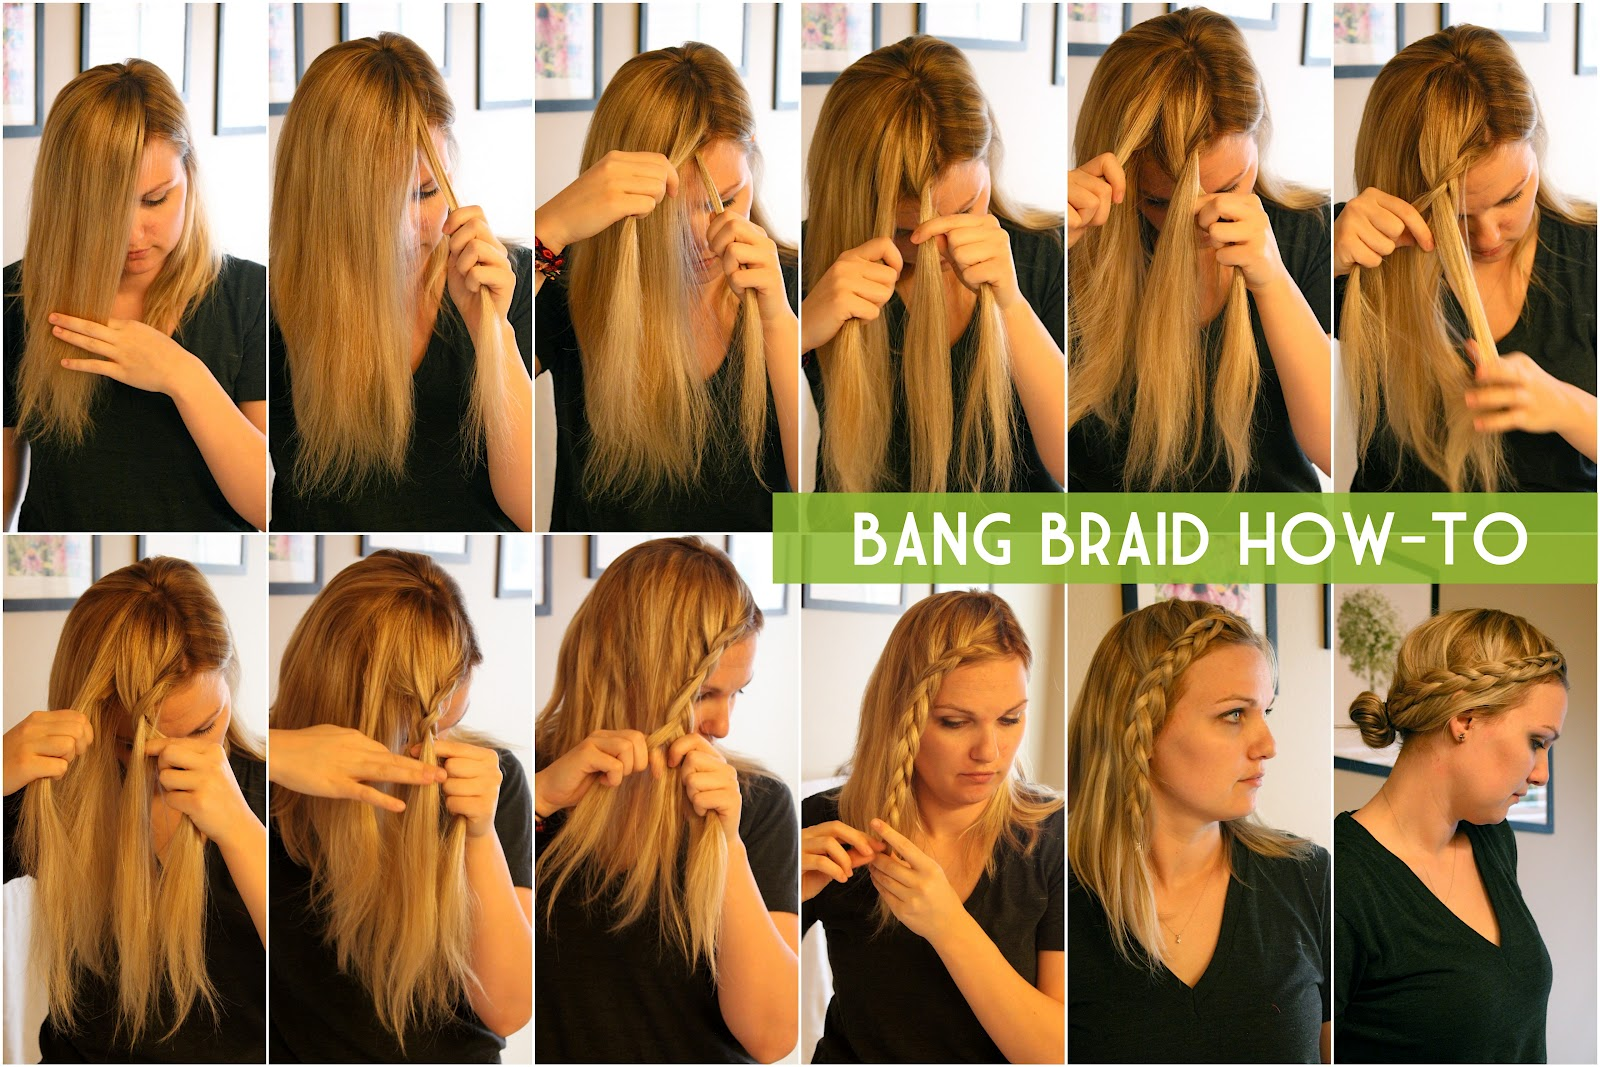 RUFFLING FEATHERS: bang braid how-to